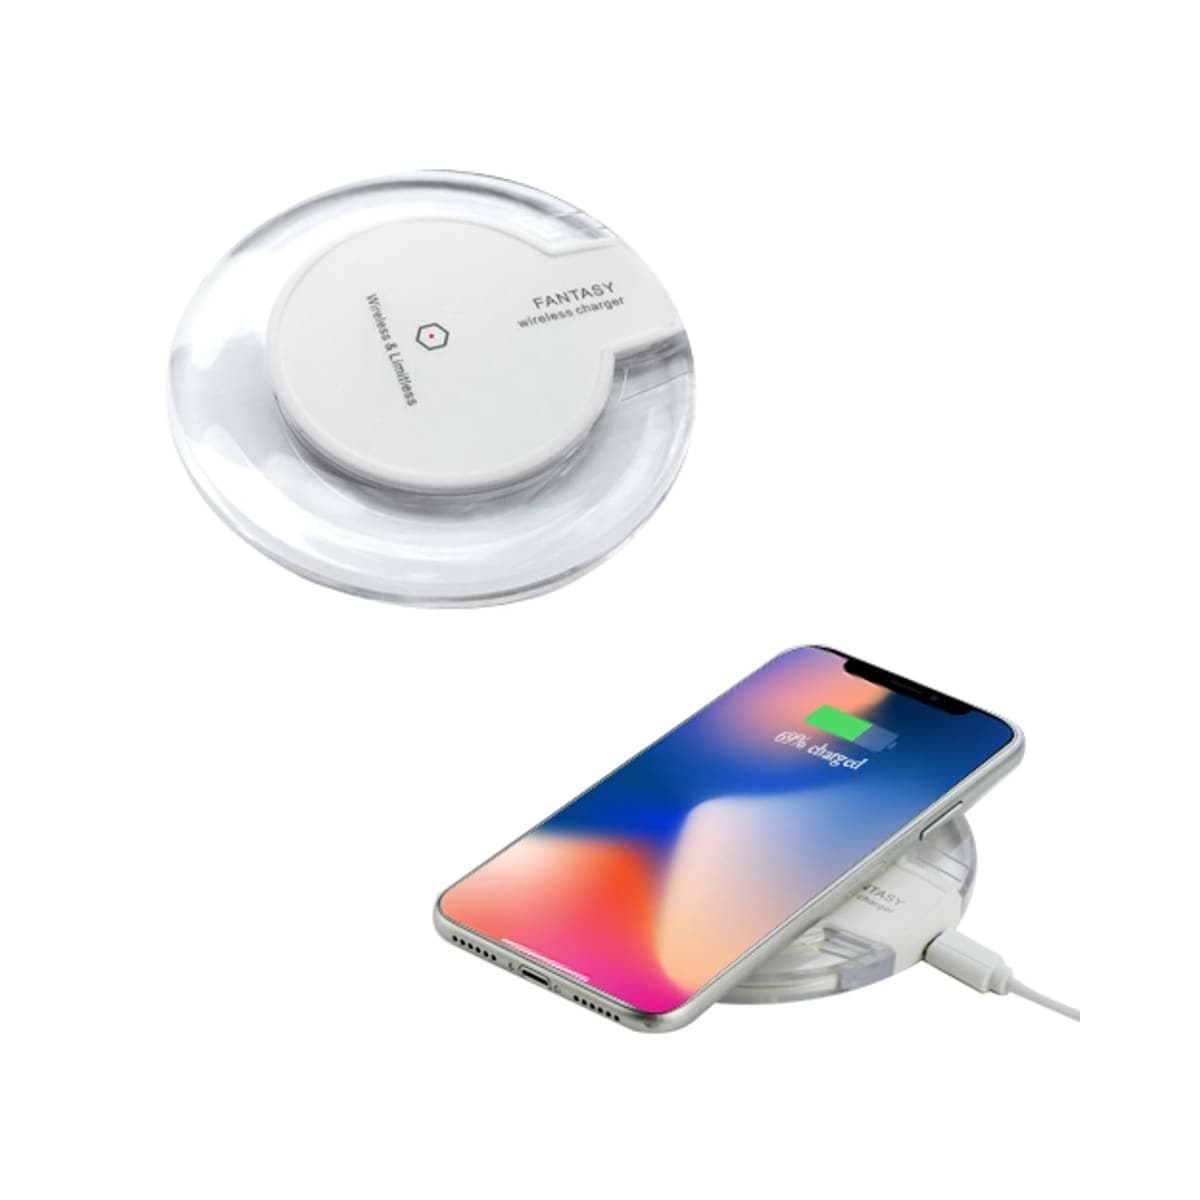 sneakers for cheap 6ec96 3763c Insten Qi Wireless Power Charging Pad for iPhone XS Max 8 Plus/ Samsung  Galaxy S9 Note 8 and all Qi-Enabled Devices, Clear White